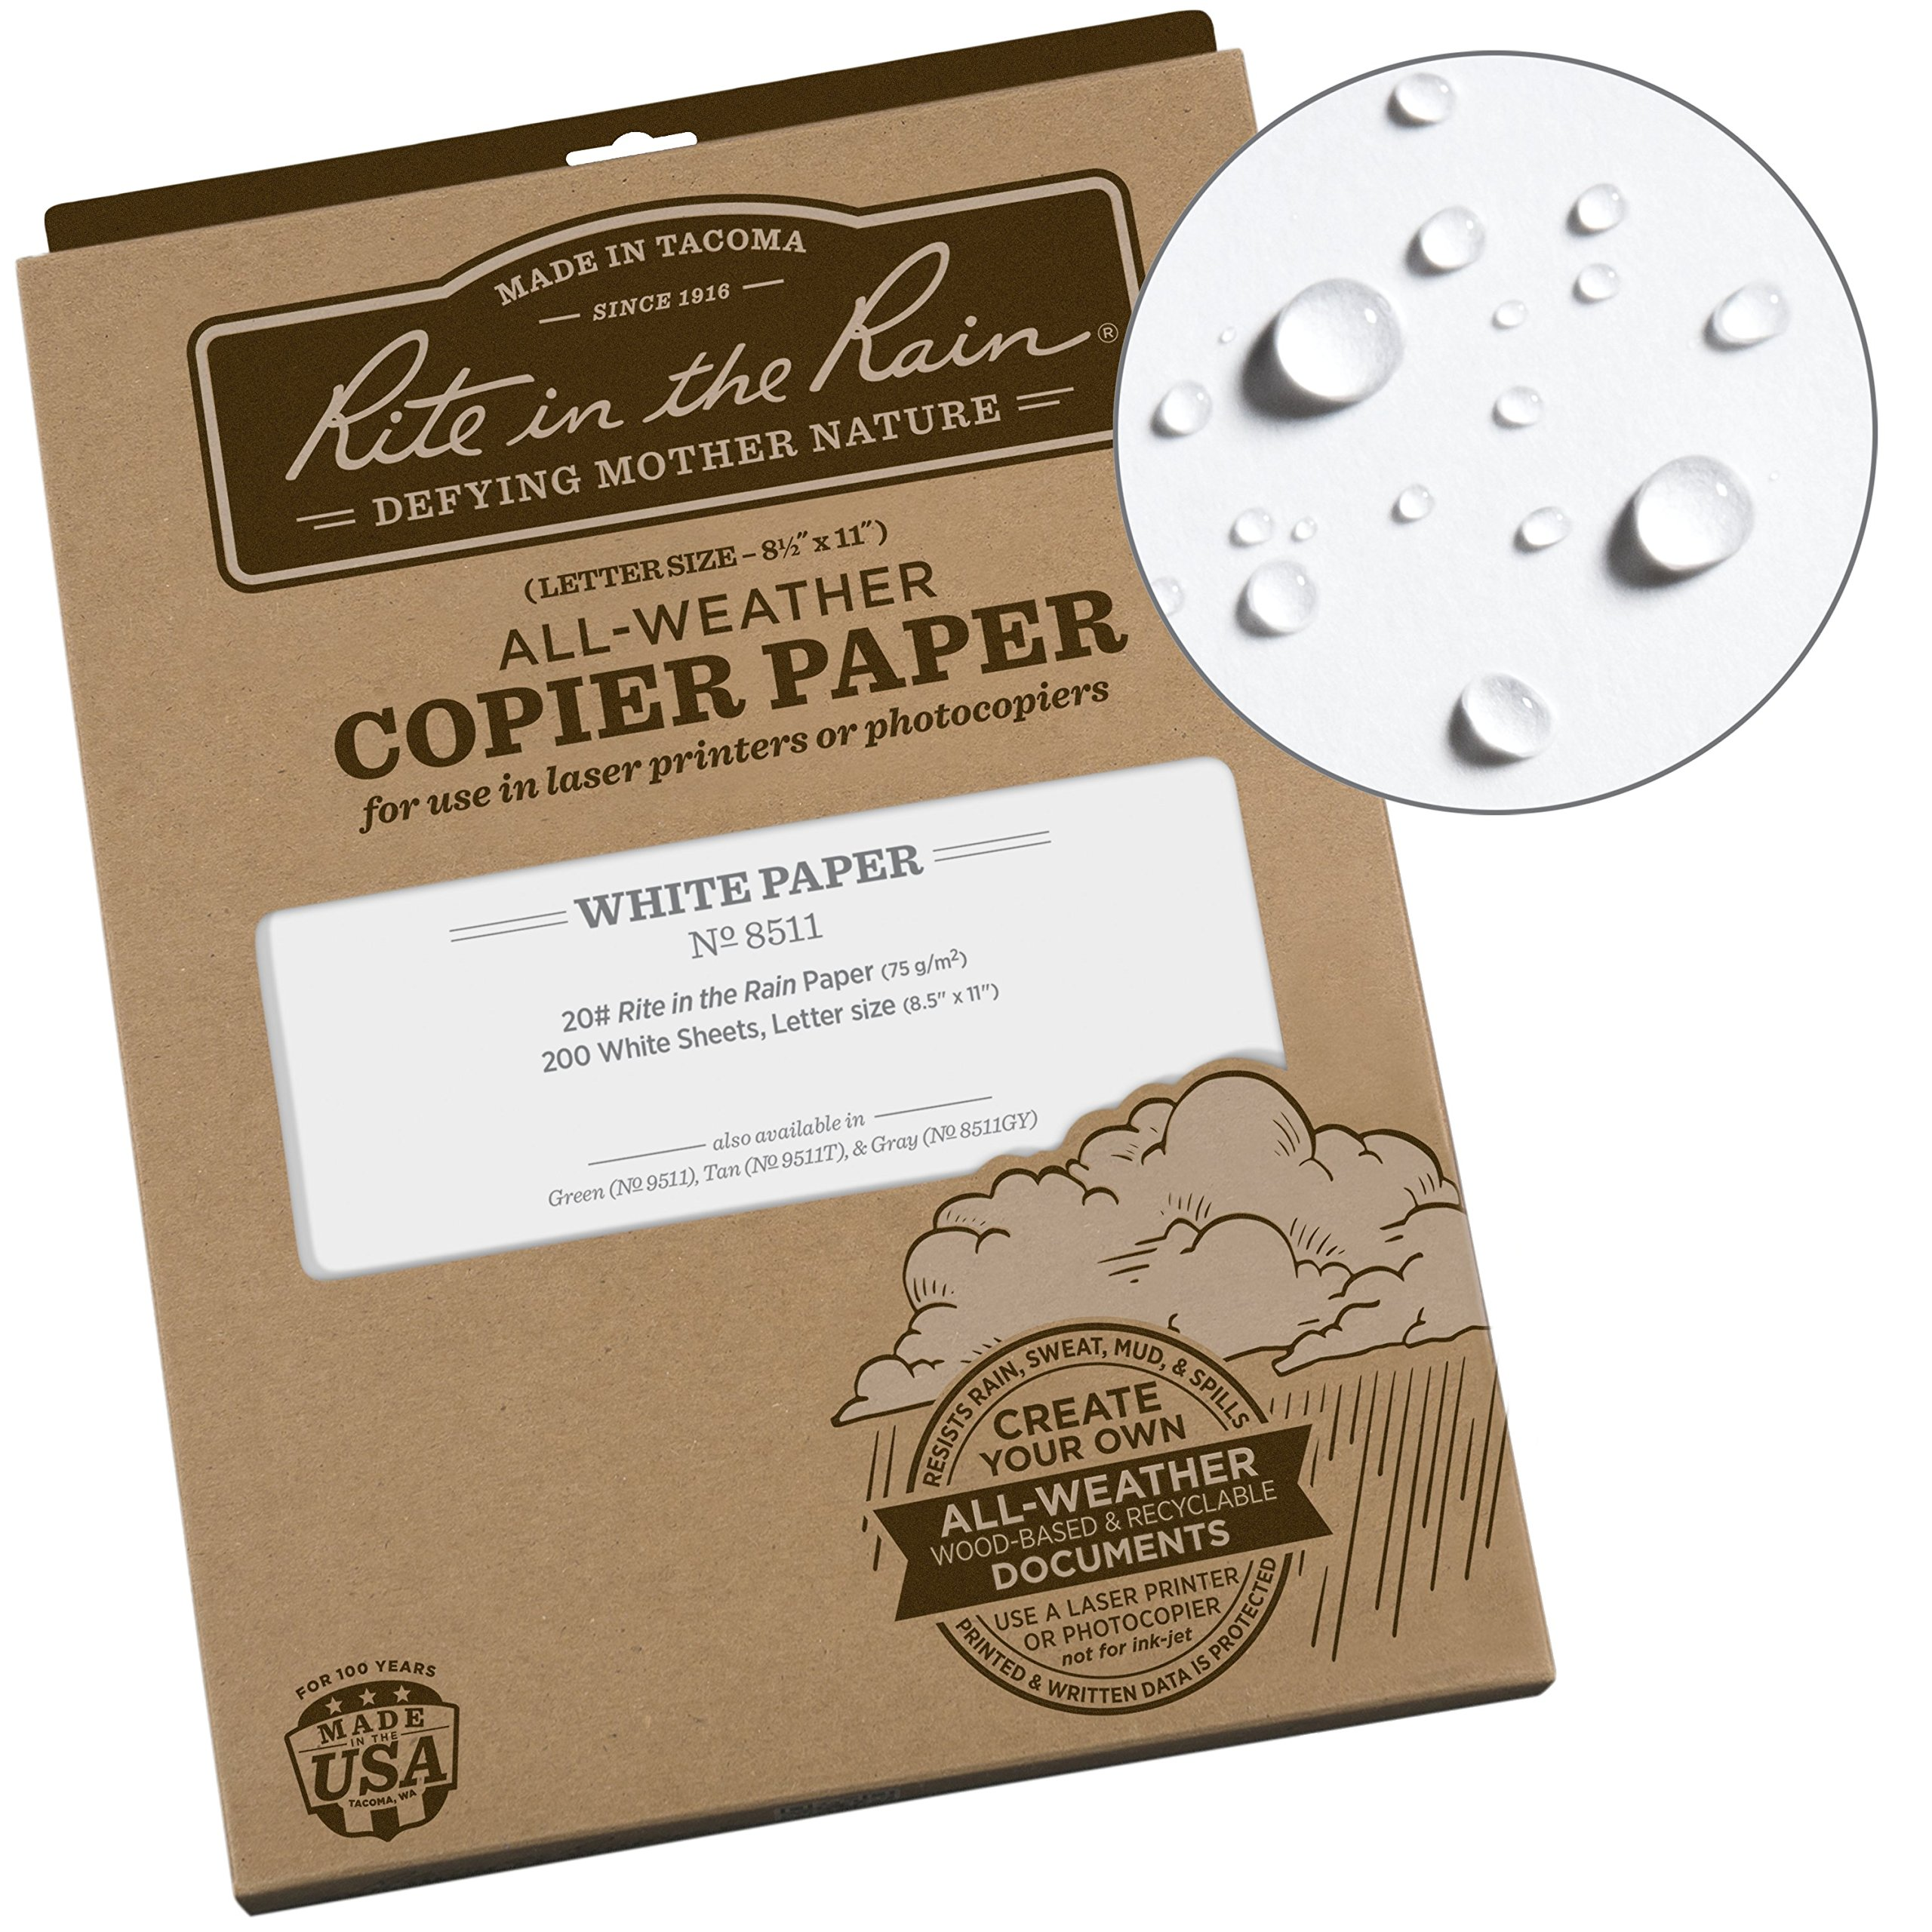 Rite in the Rain All-Weather Copier Paper, 8 1/2'' x 11'', 20# White, 200 Sheet Pack (No. 8511)